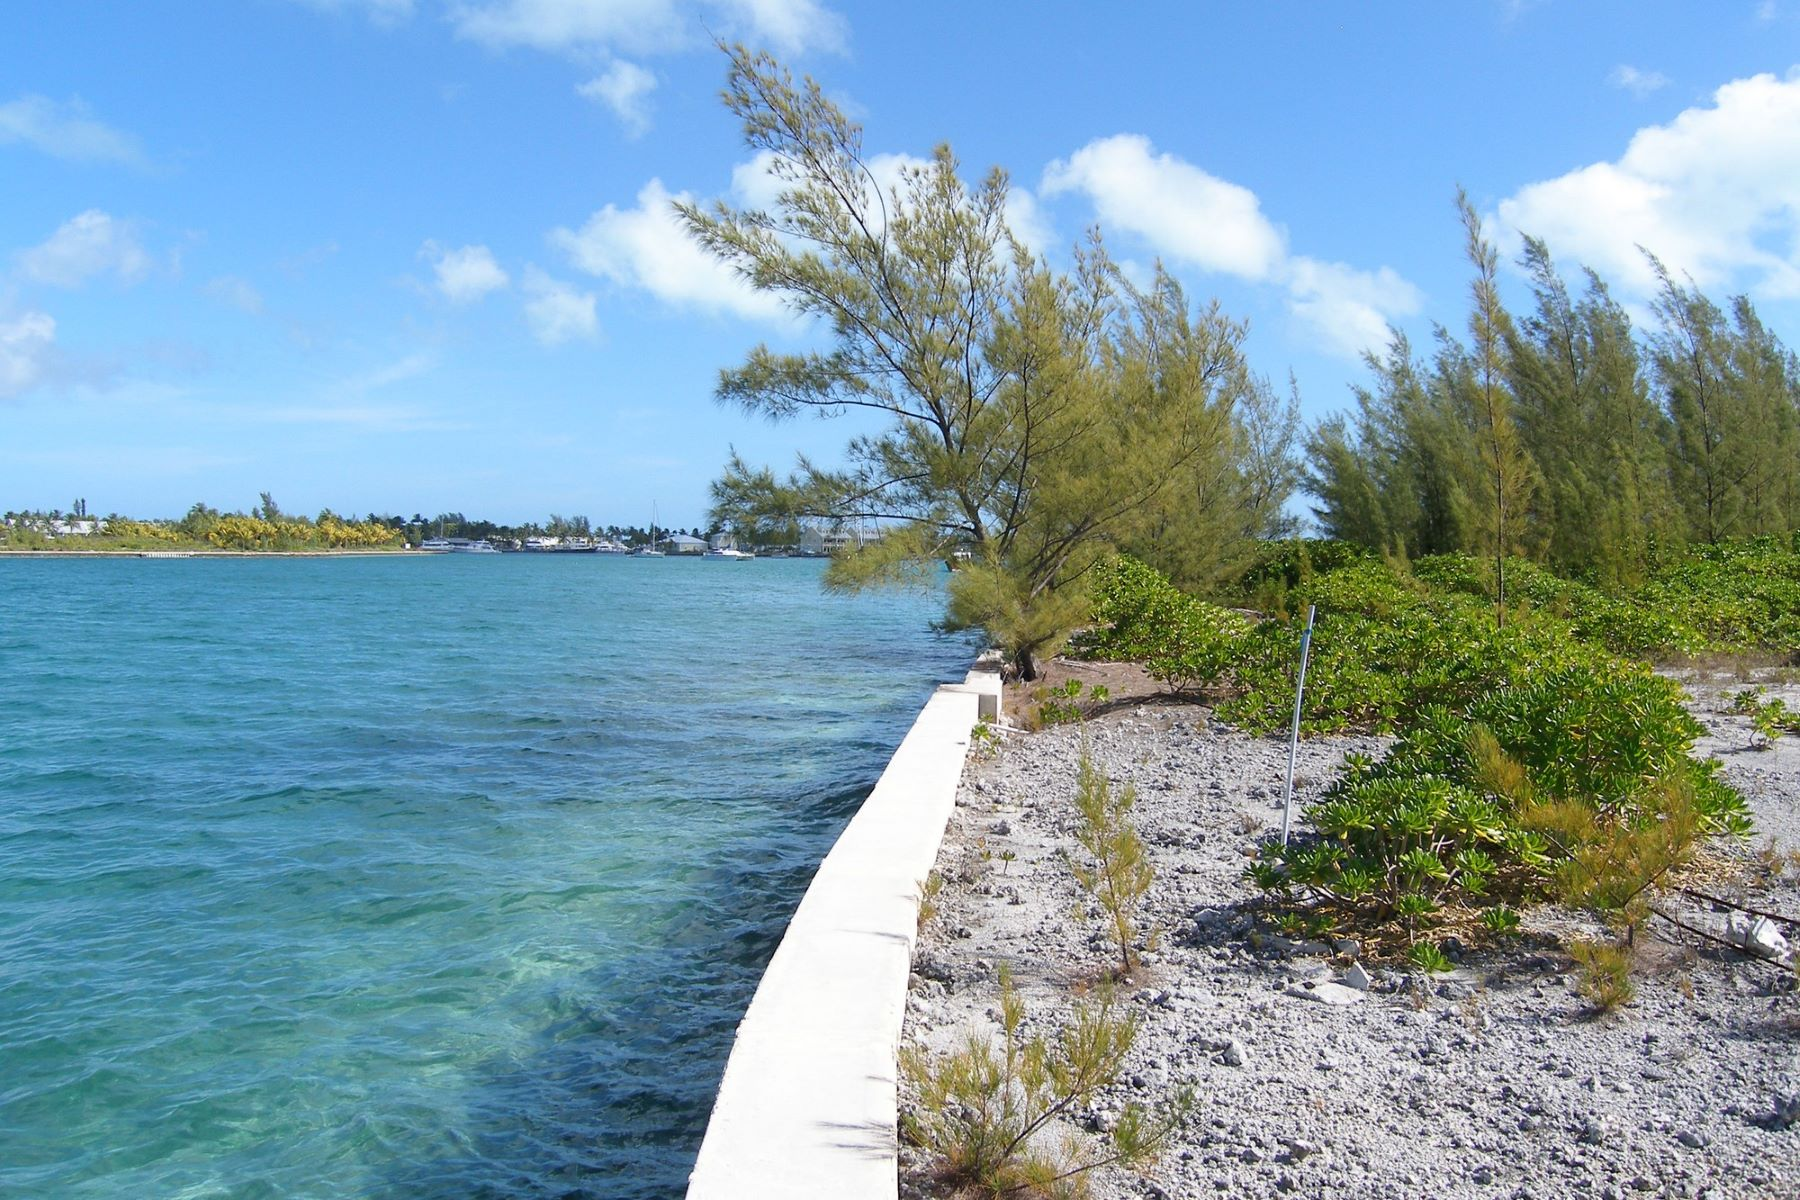 Land for Sale at Marina Entrance Canalfront Lot Treasure Cay, Abaco Bahamas